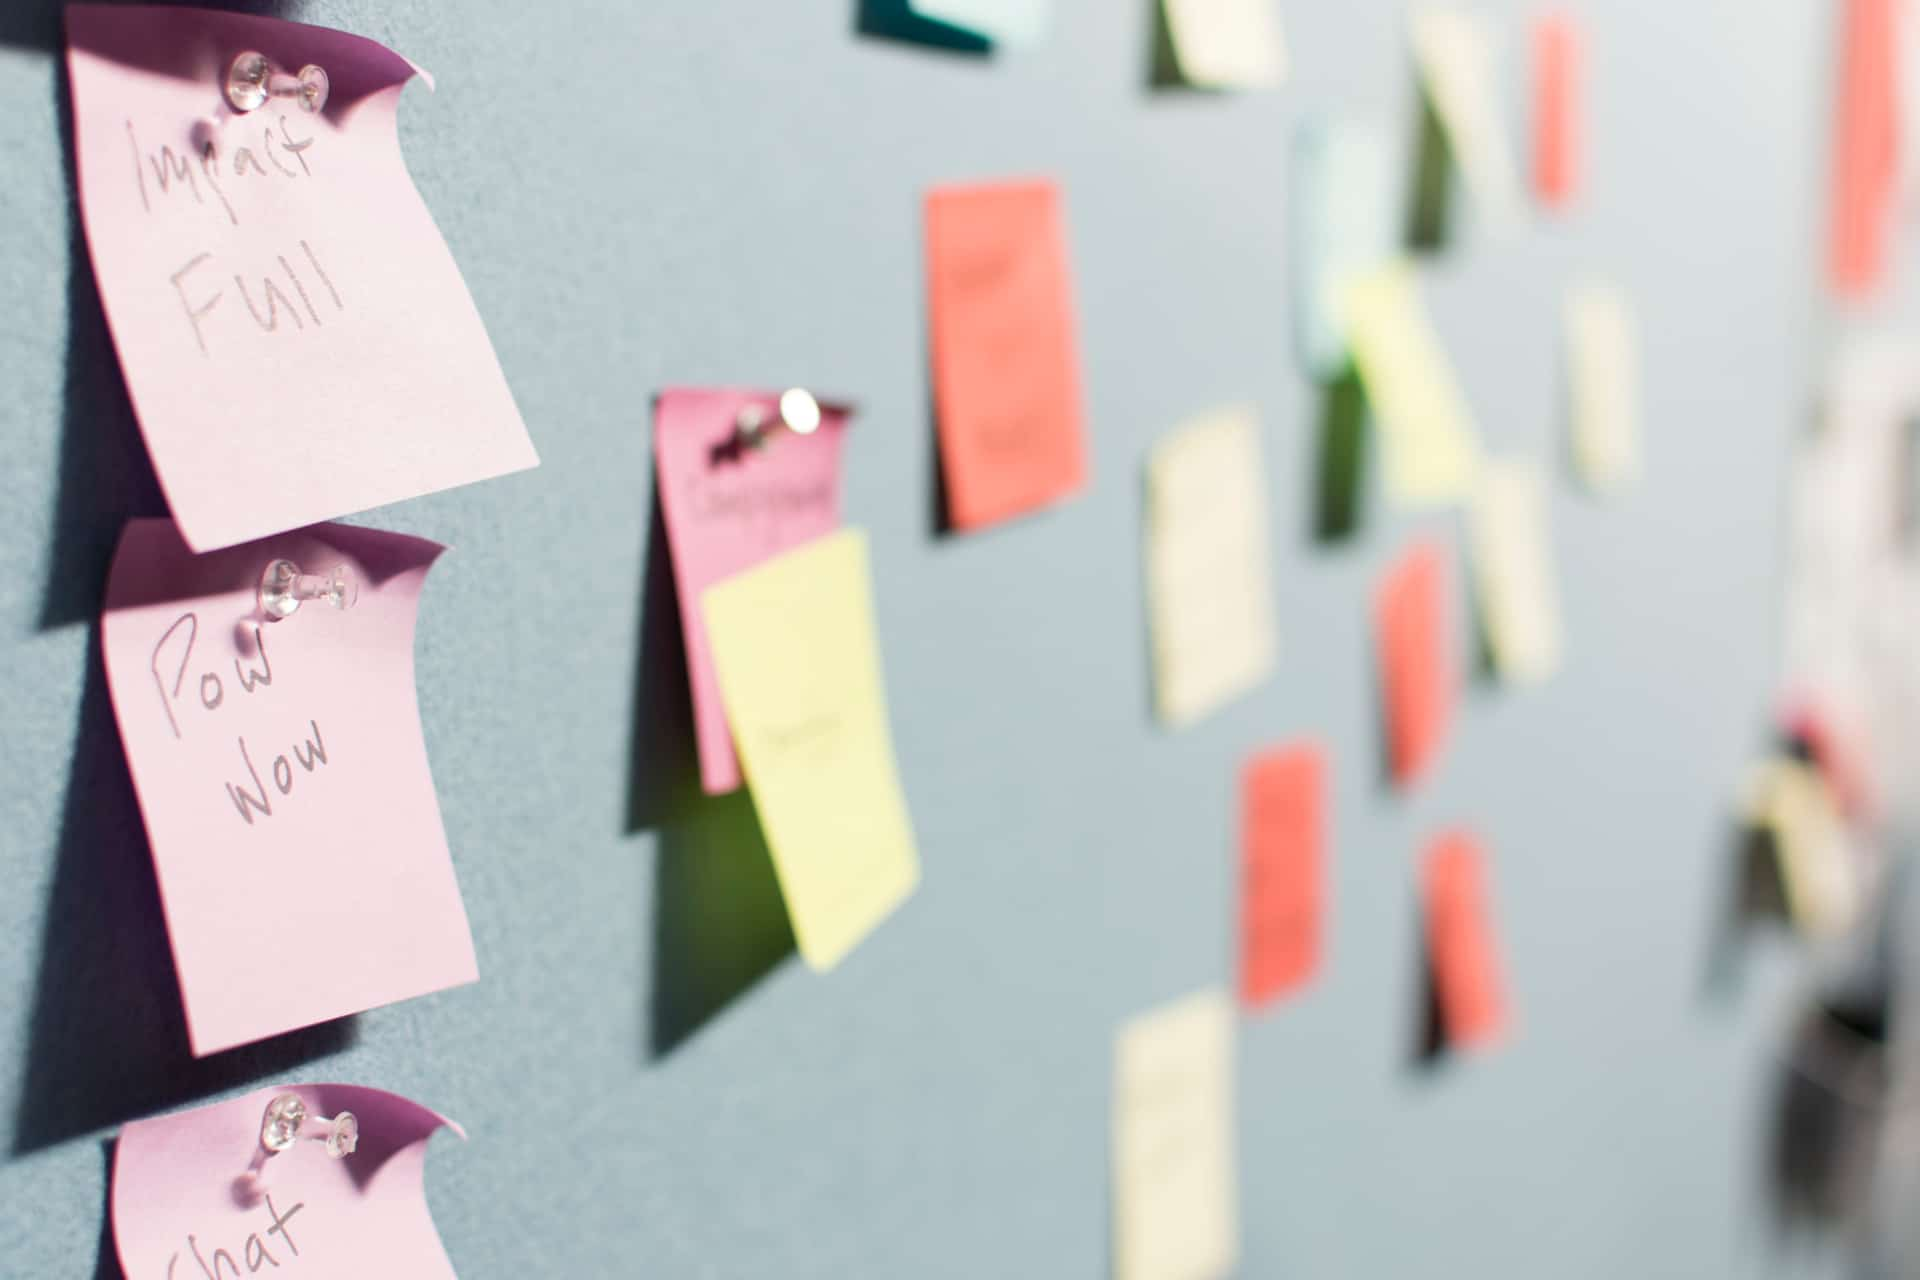 Timeular is a highly effective tool for strategy managers seeking to better manage their time